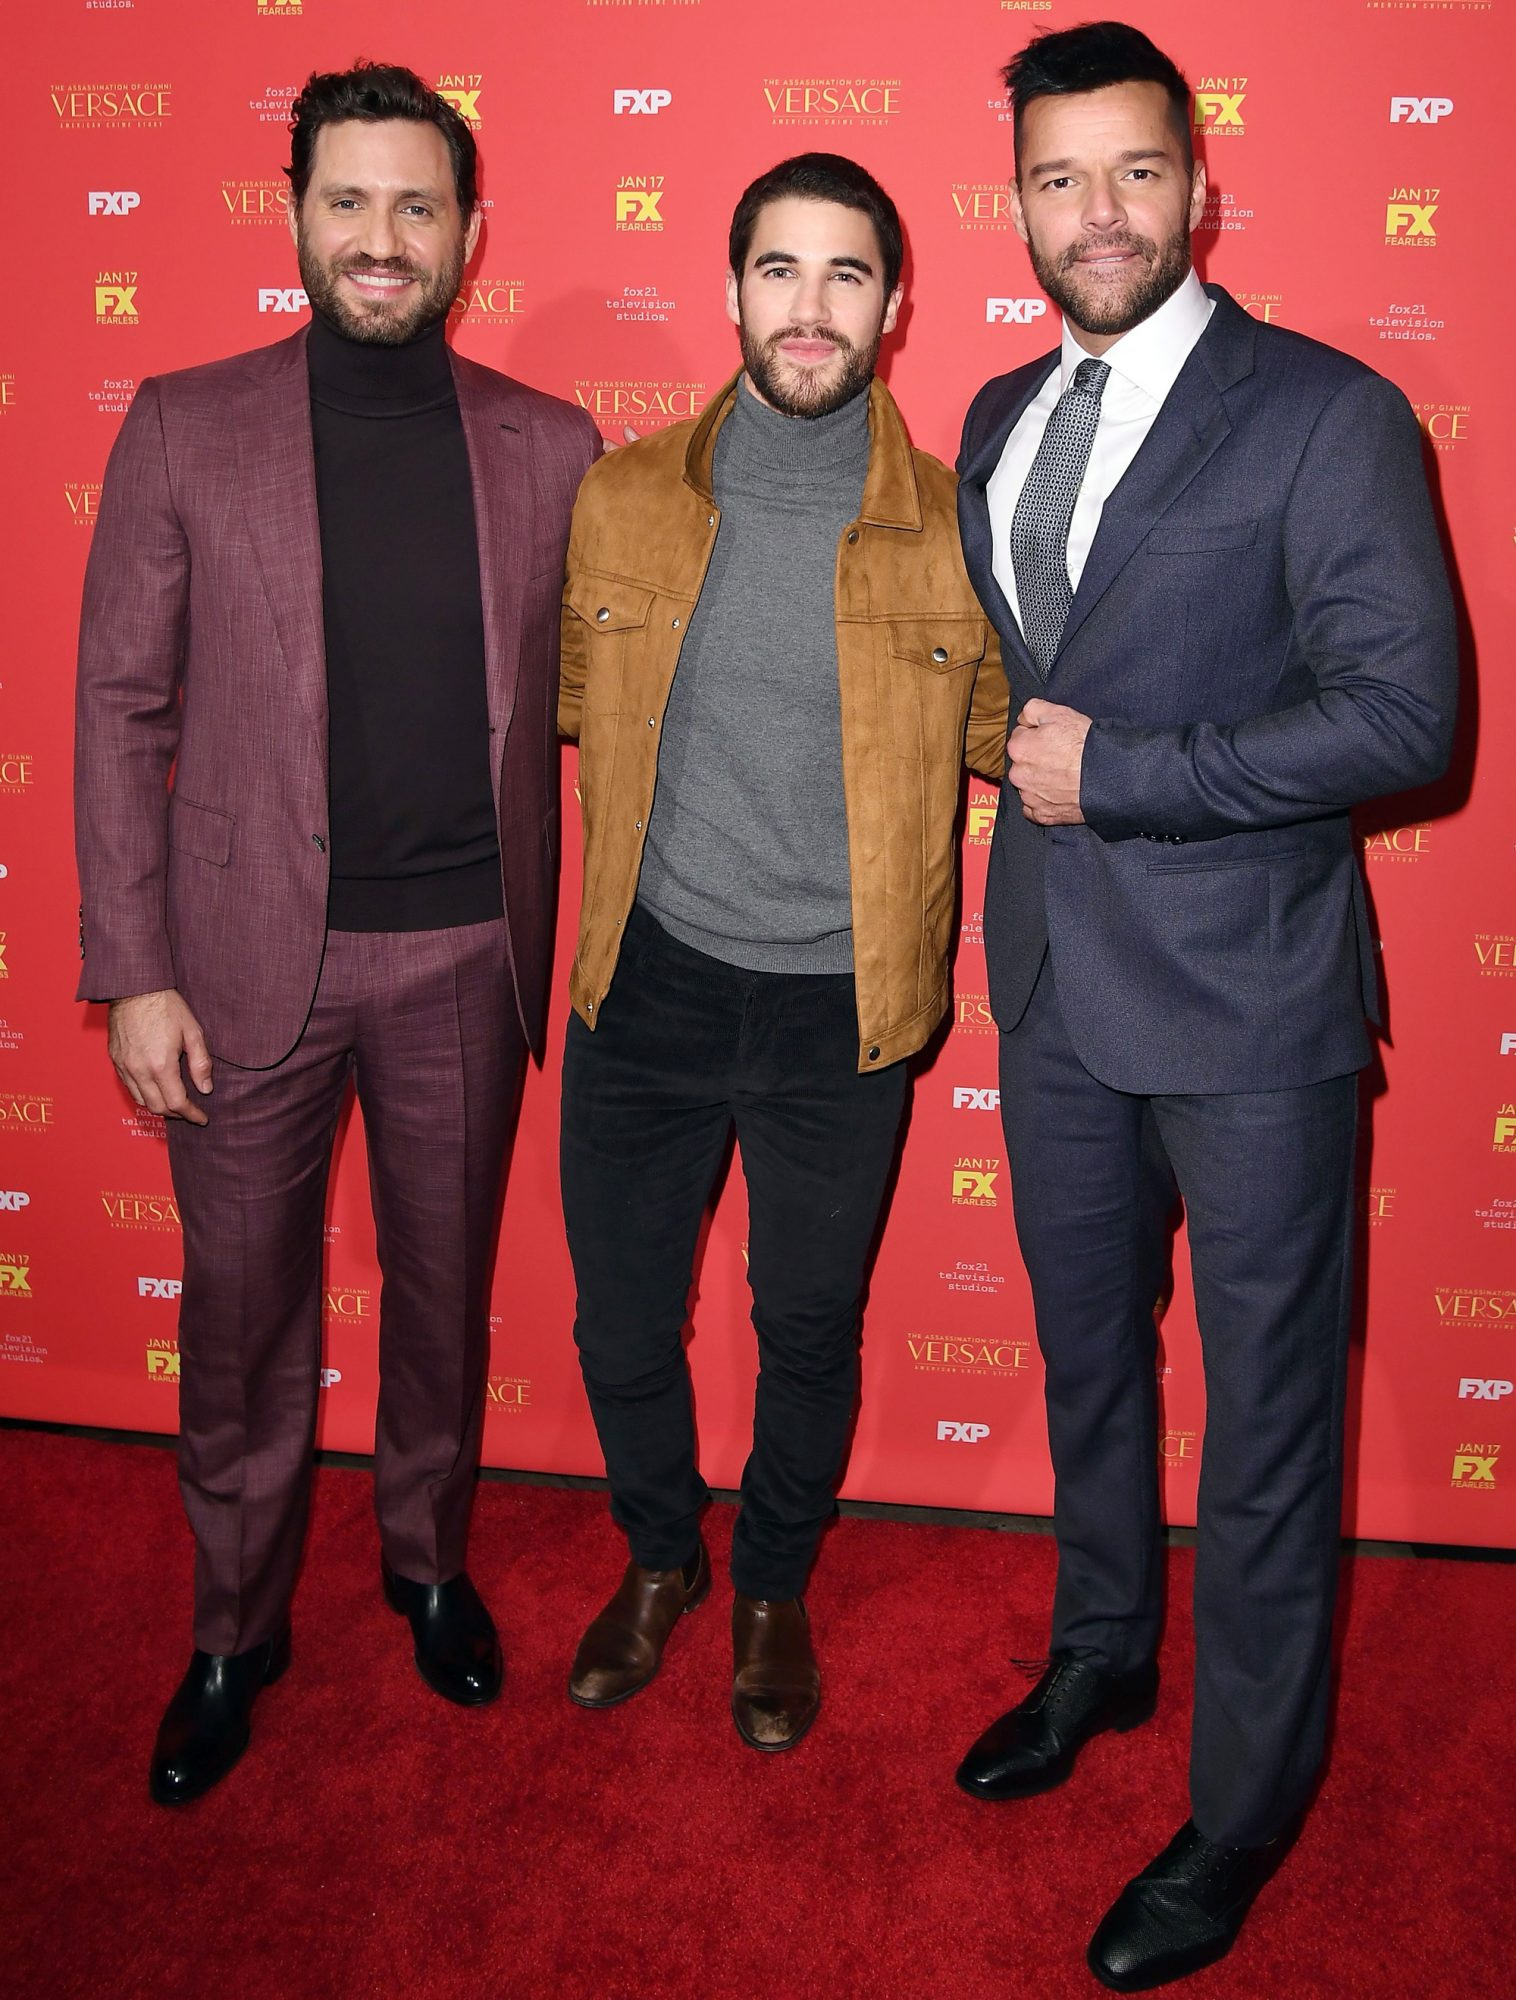 Edgar Ramirez, Darren Criss, and Ricky Martin